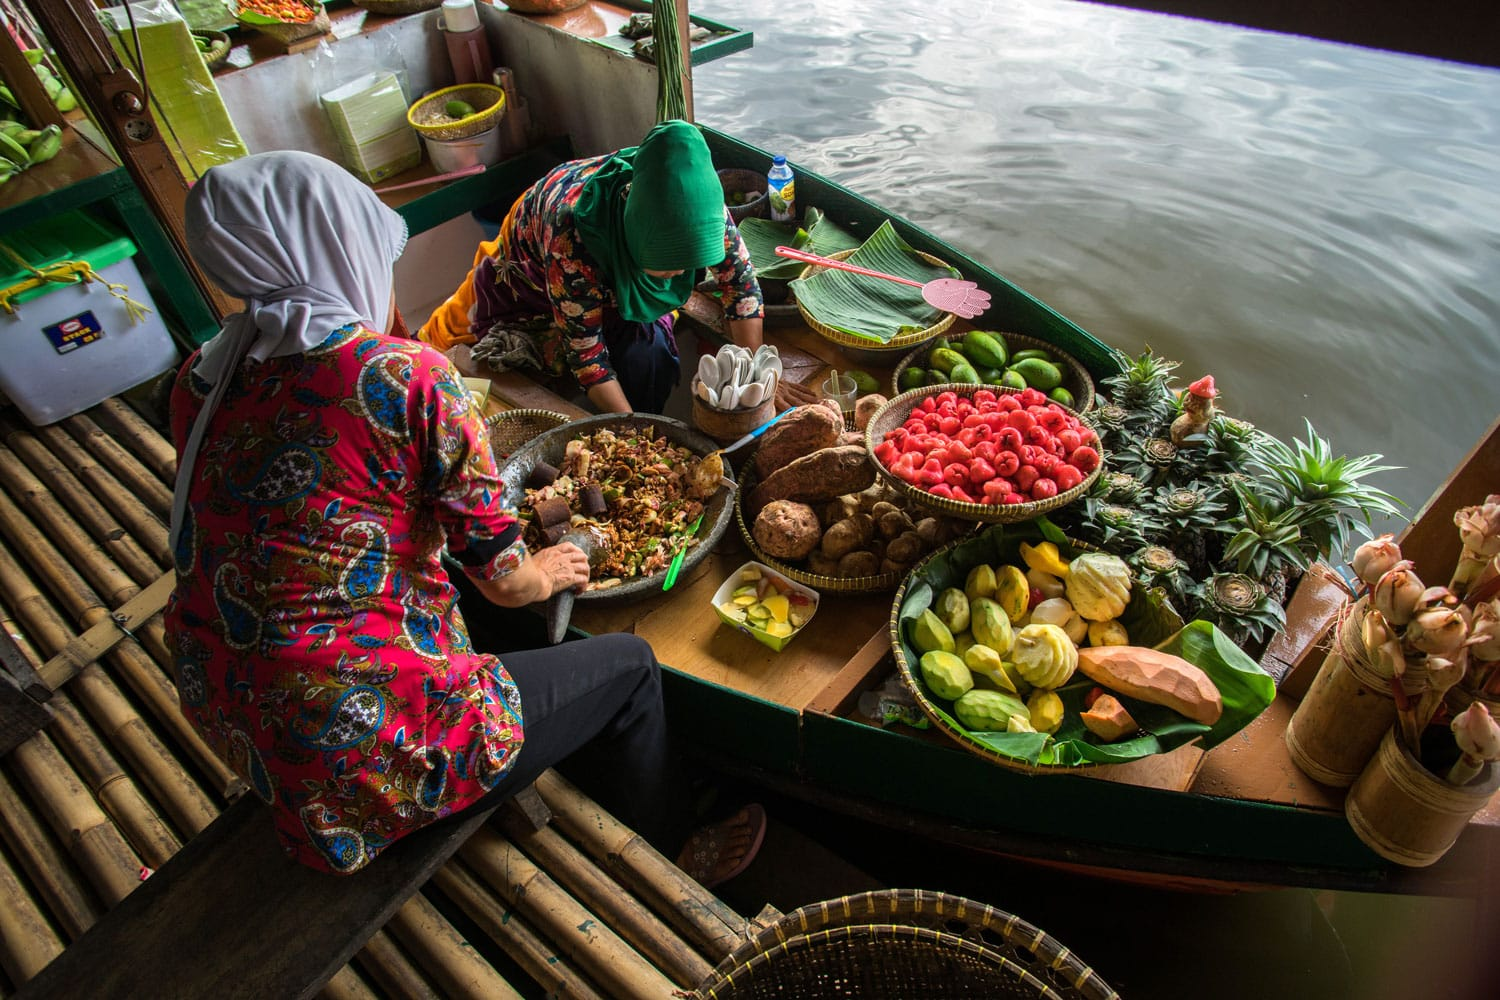 View around the floating market in Lembang, Bandung, Indonesia.